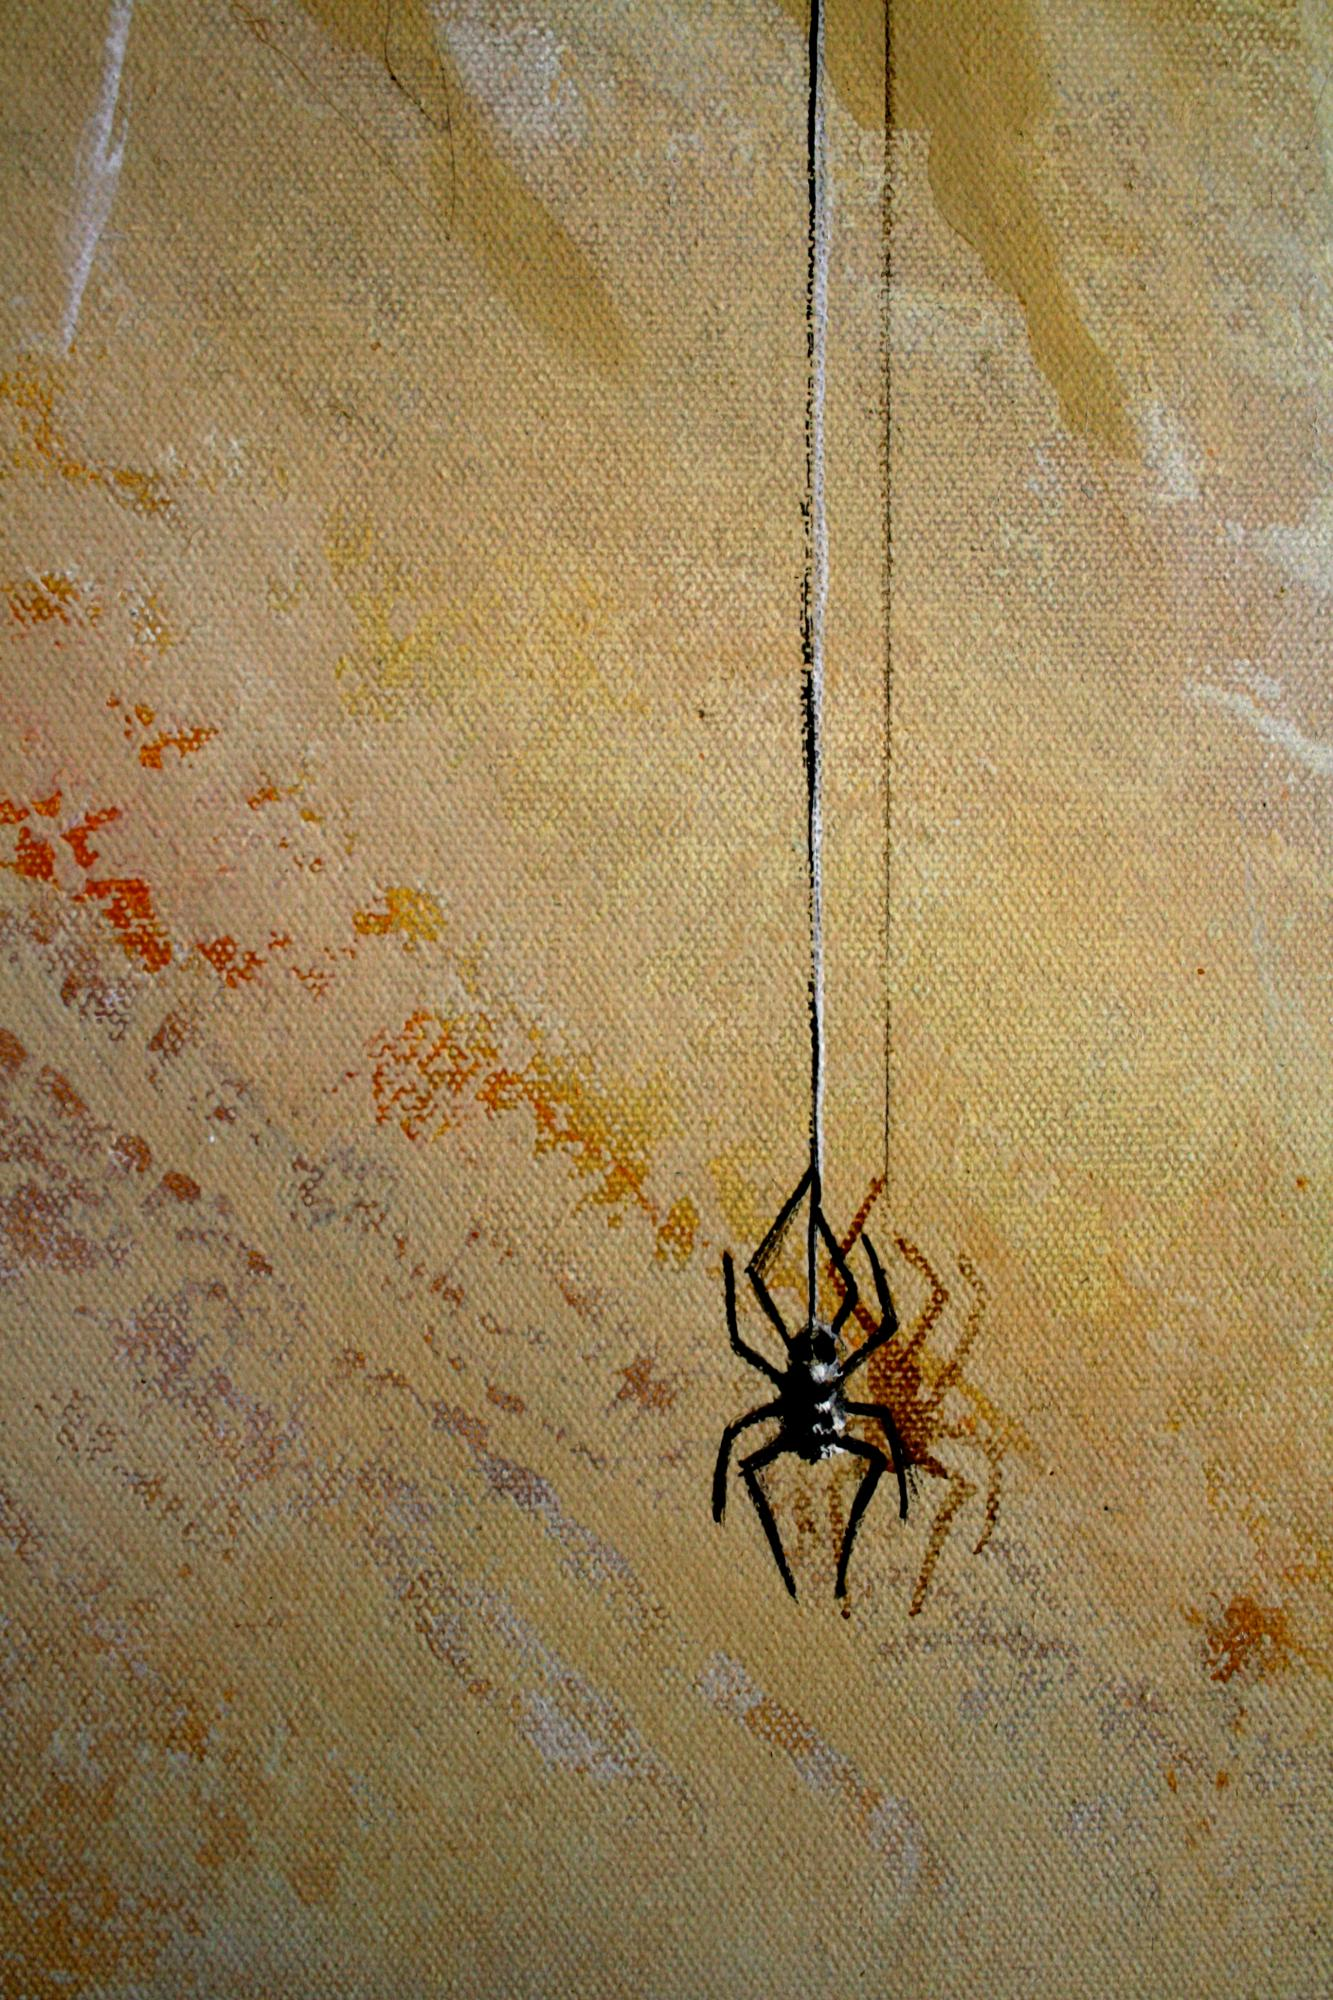 Spider on Faux Marble mural